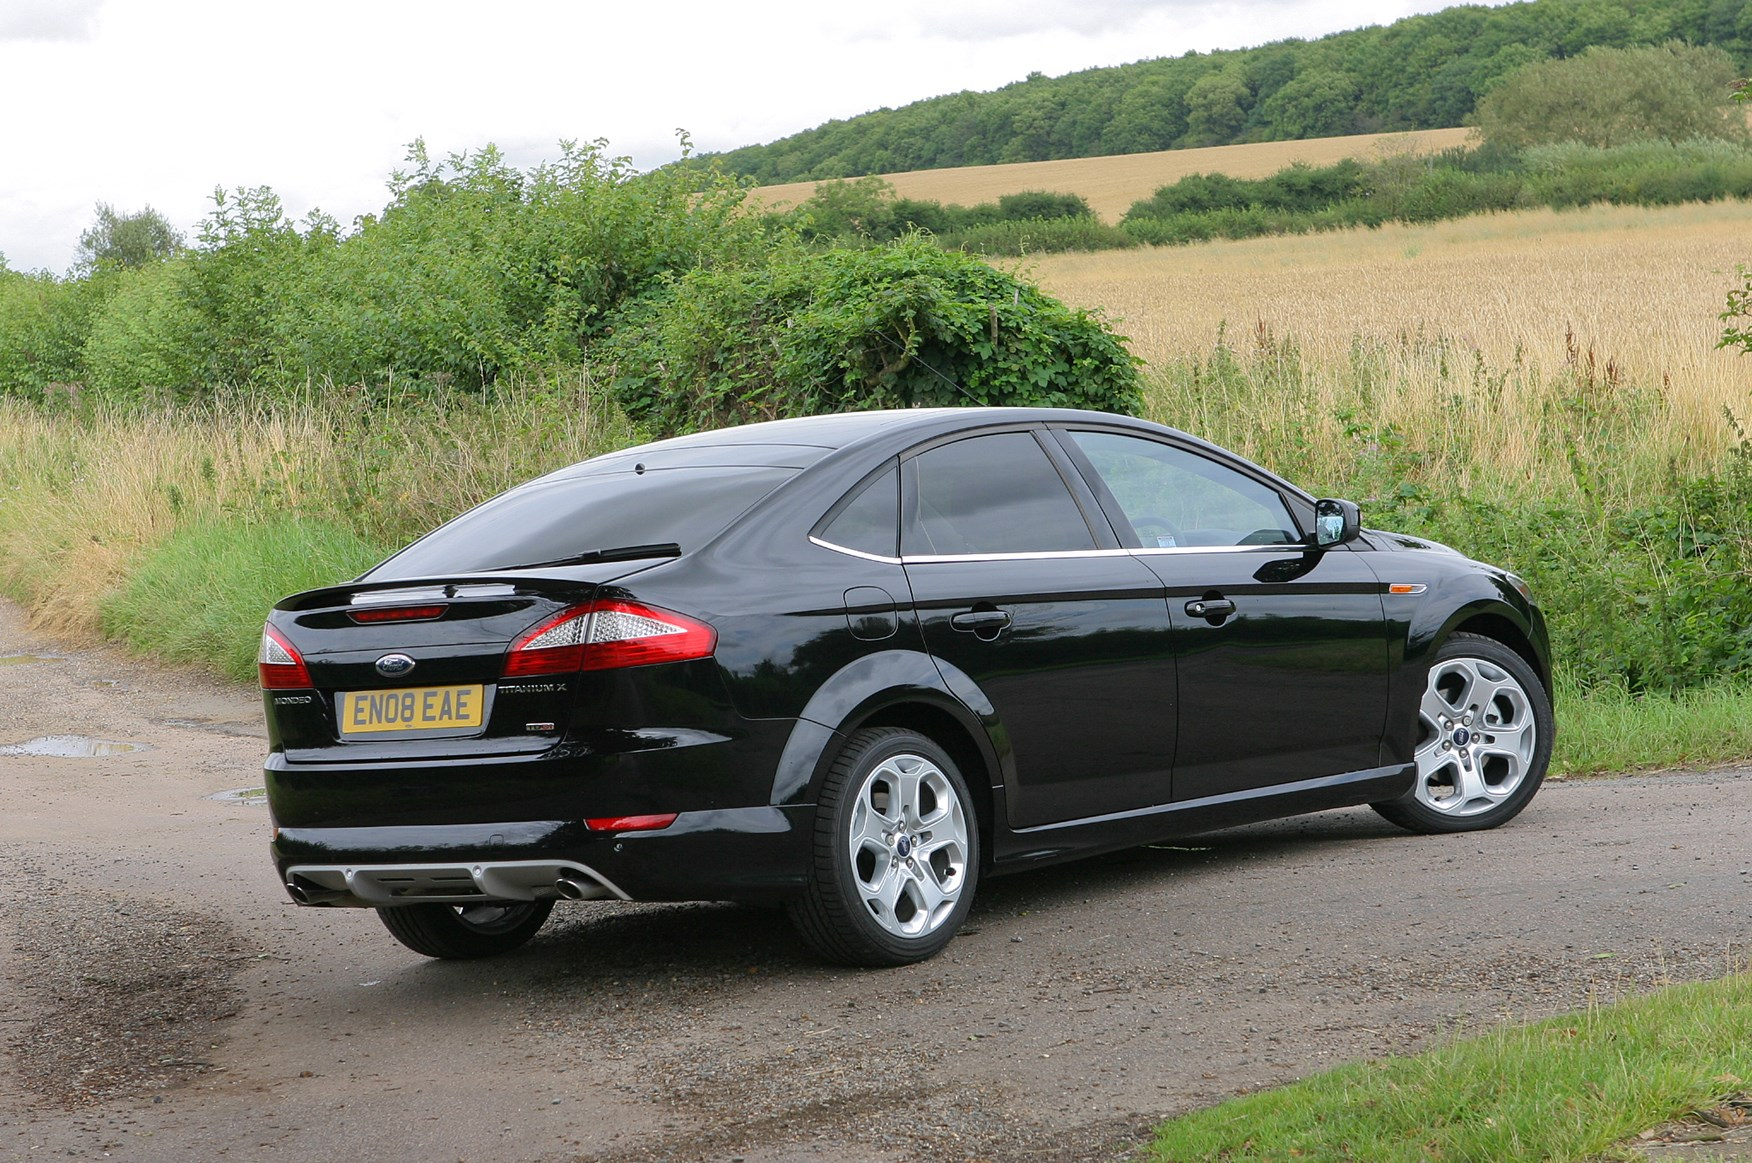 Ford Mondeo Hatchback Review (2007 - 2014) | Parkers